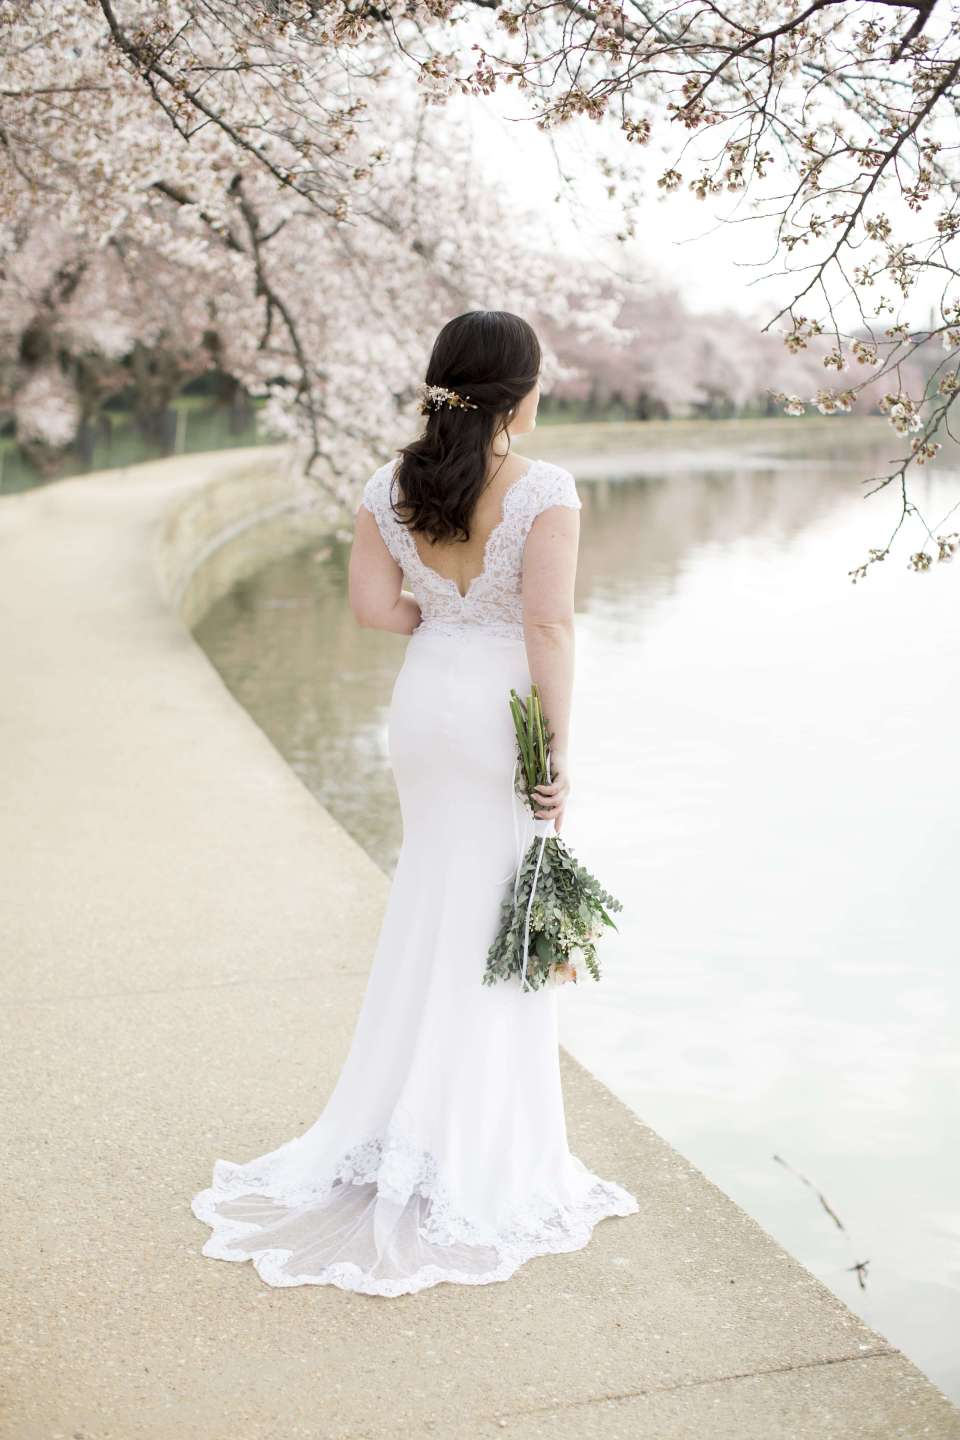 A bride poses wearing an open back eco friendly wedding dress from American brand, Krustallos Couture.